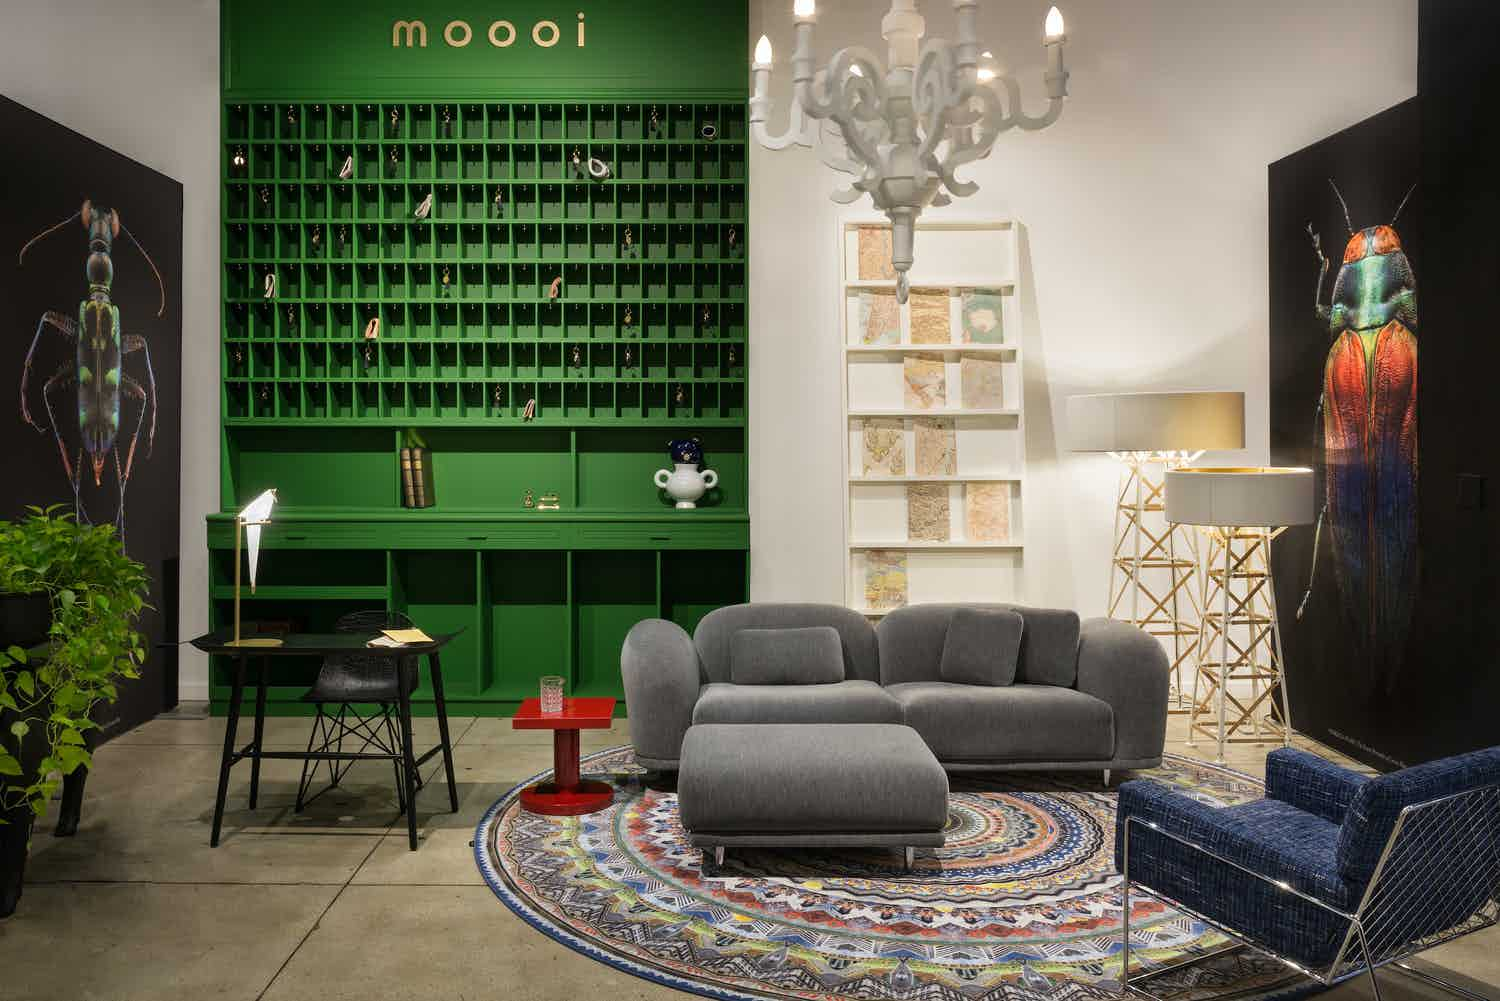 Moooi cloud sofa grey insitu haute living